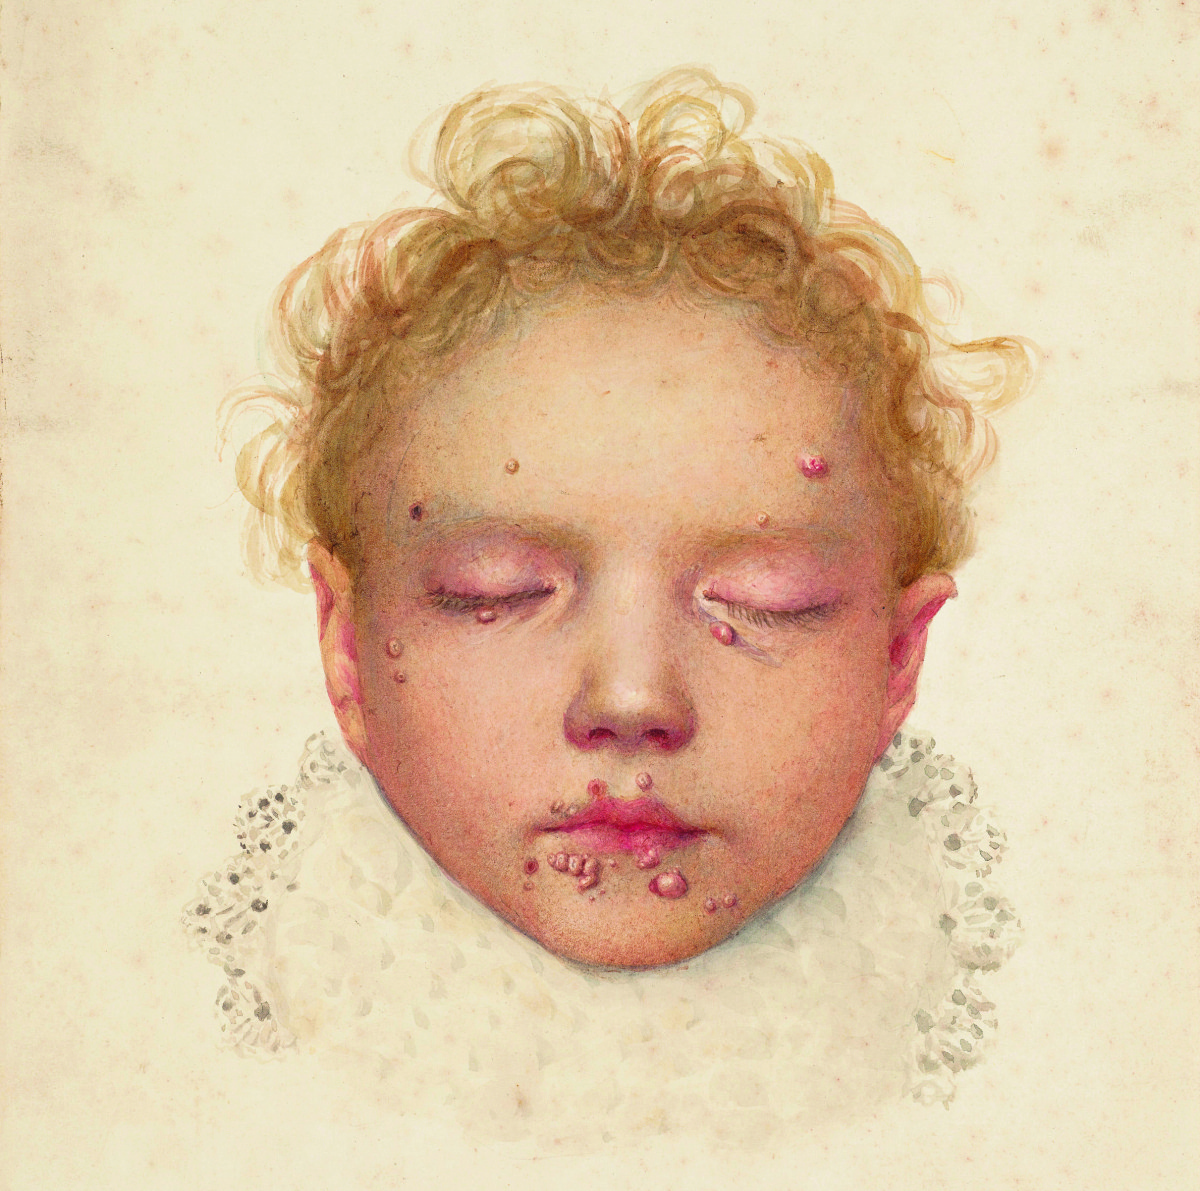 The head of a child with blisters and other lesions affecting the skin. Photograph: Wellcome Library, London